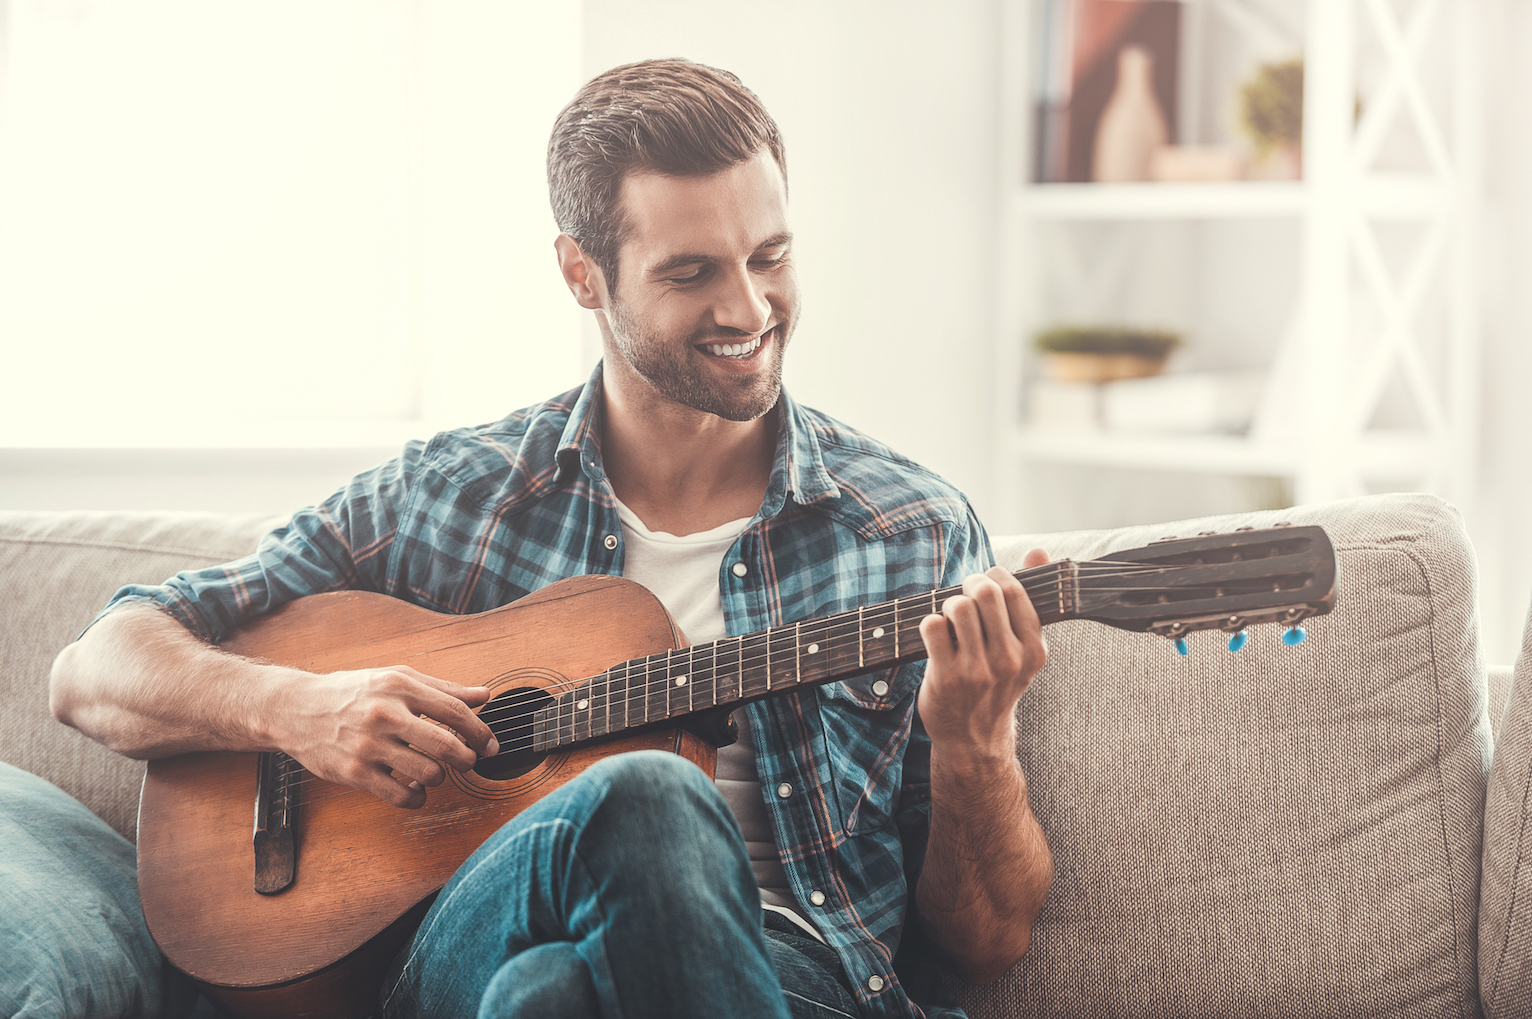 A new study has revealed that musicians have increased connectivity of the auditory-motor network which enhances their speech perception.